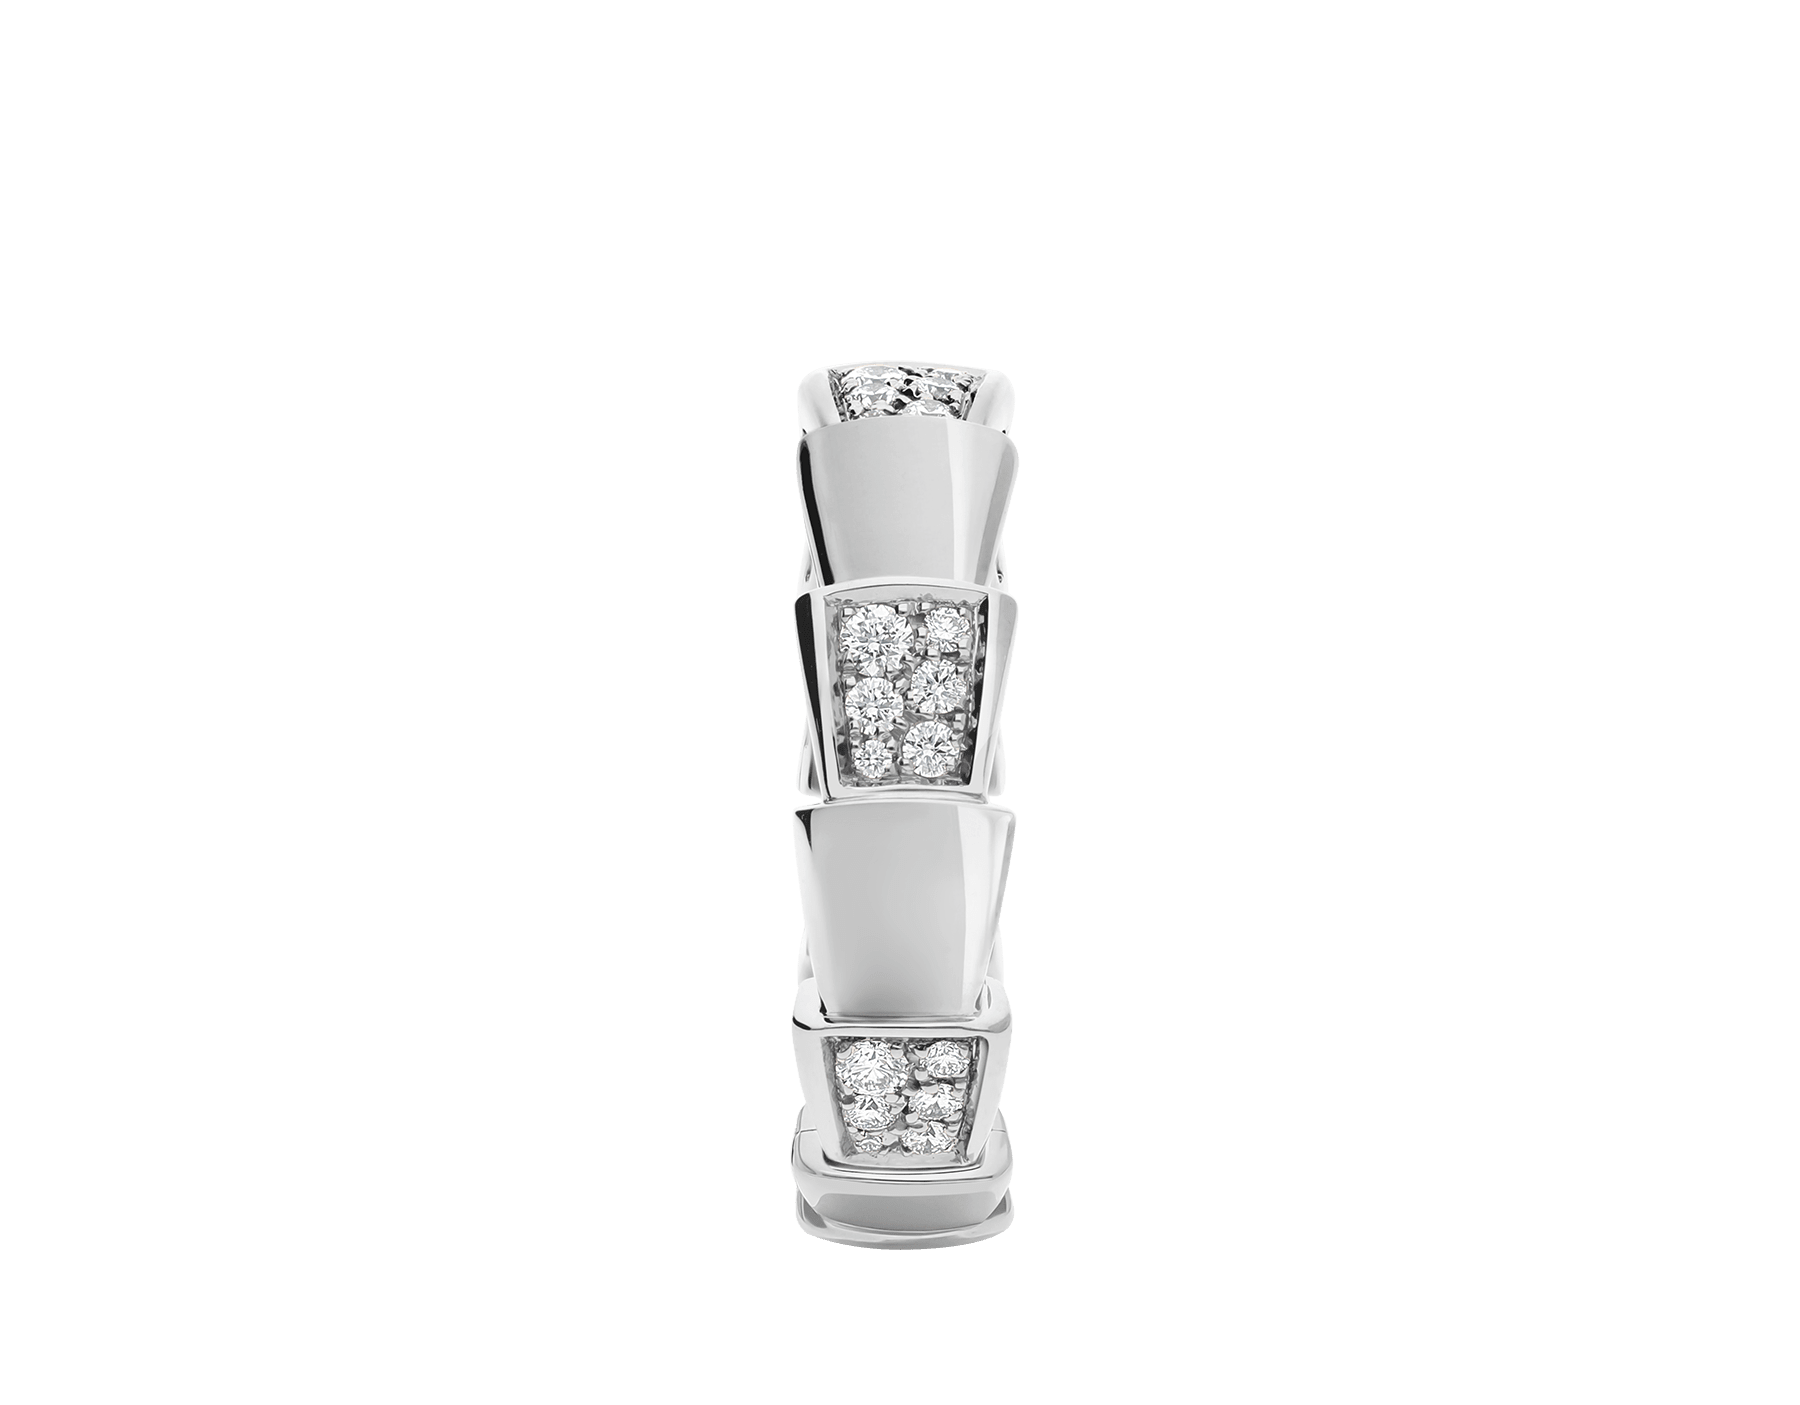 Serpenti Viper band ring in 18 kt white gold set with demi pavé diamonds (0.43 ct). AN857931 image 2